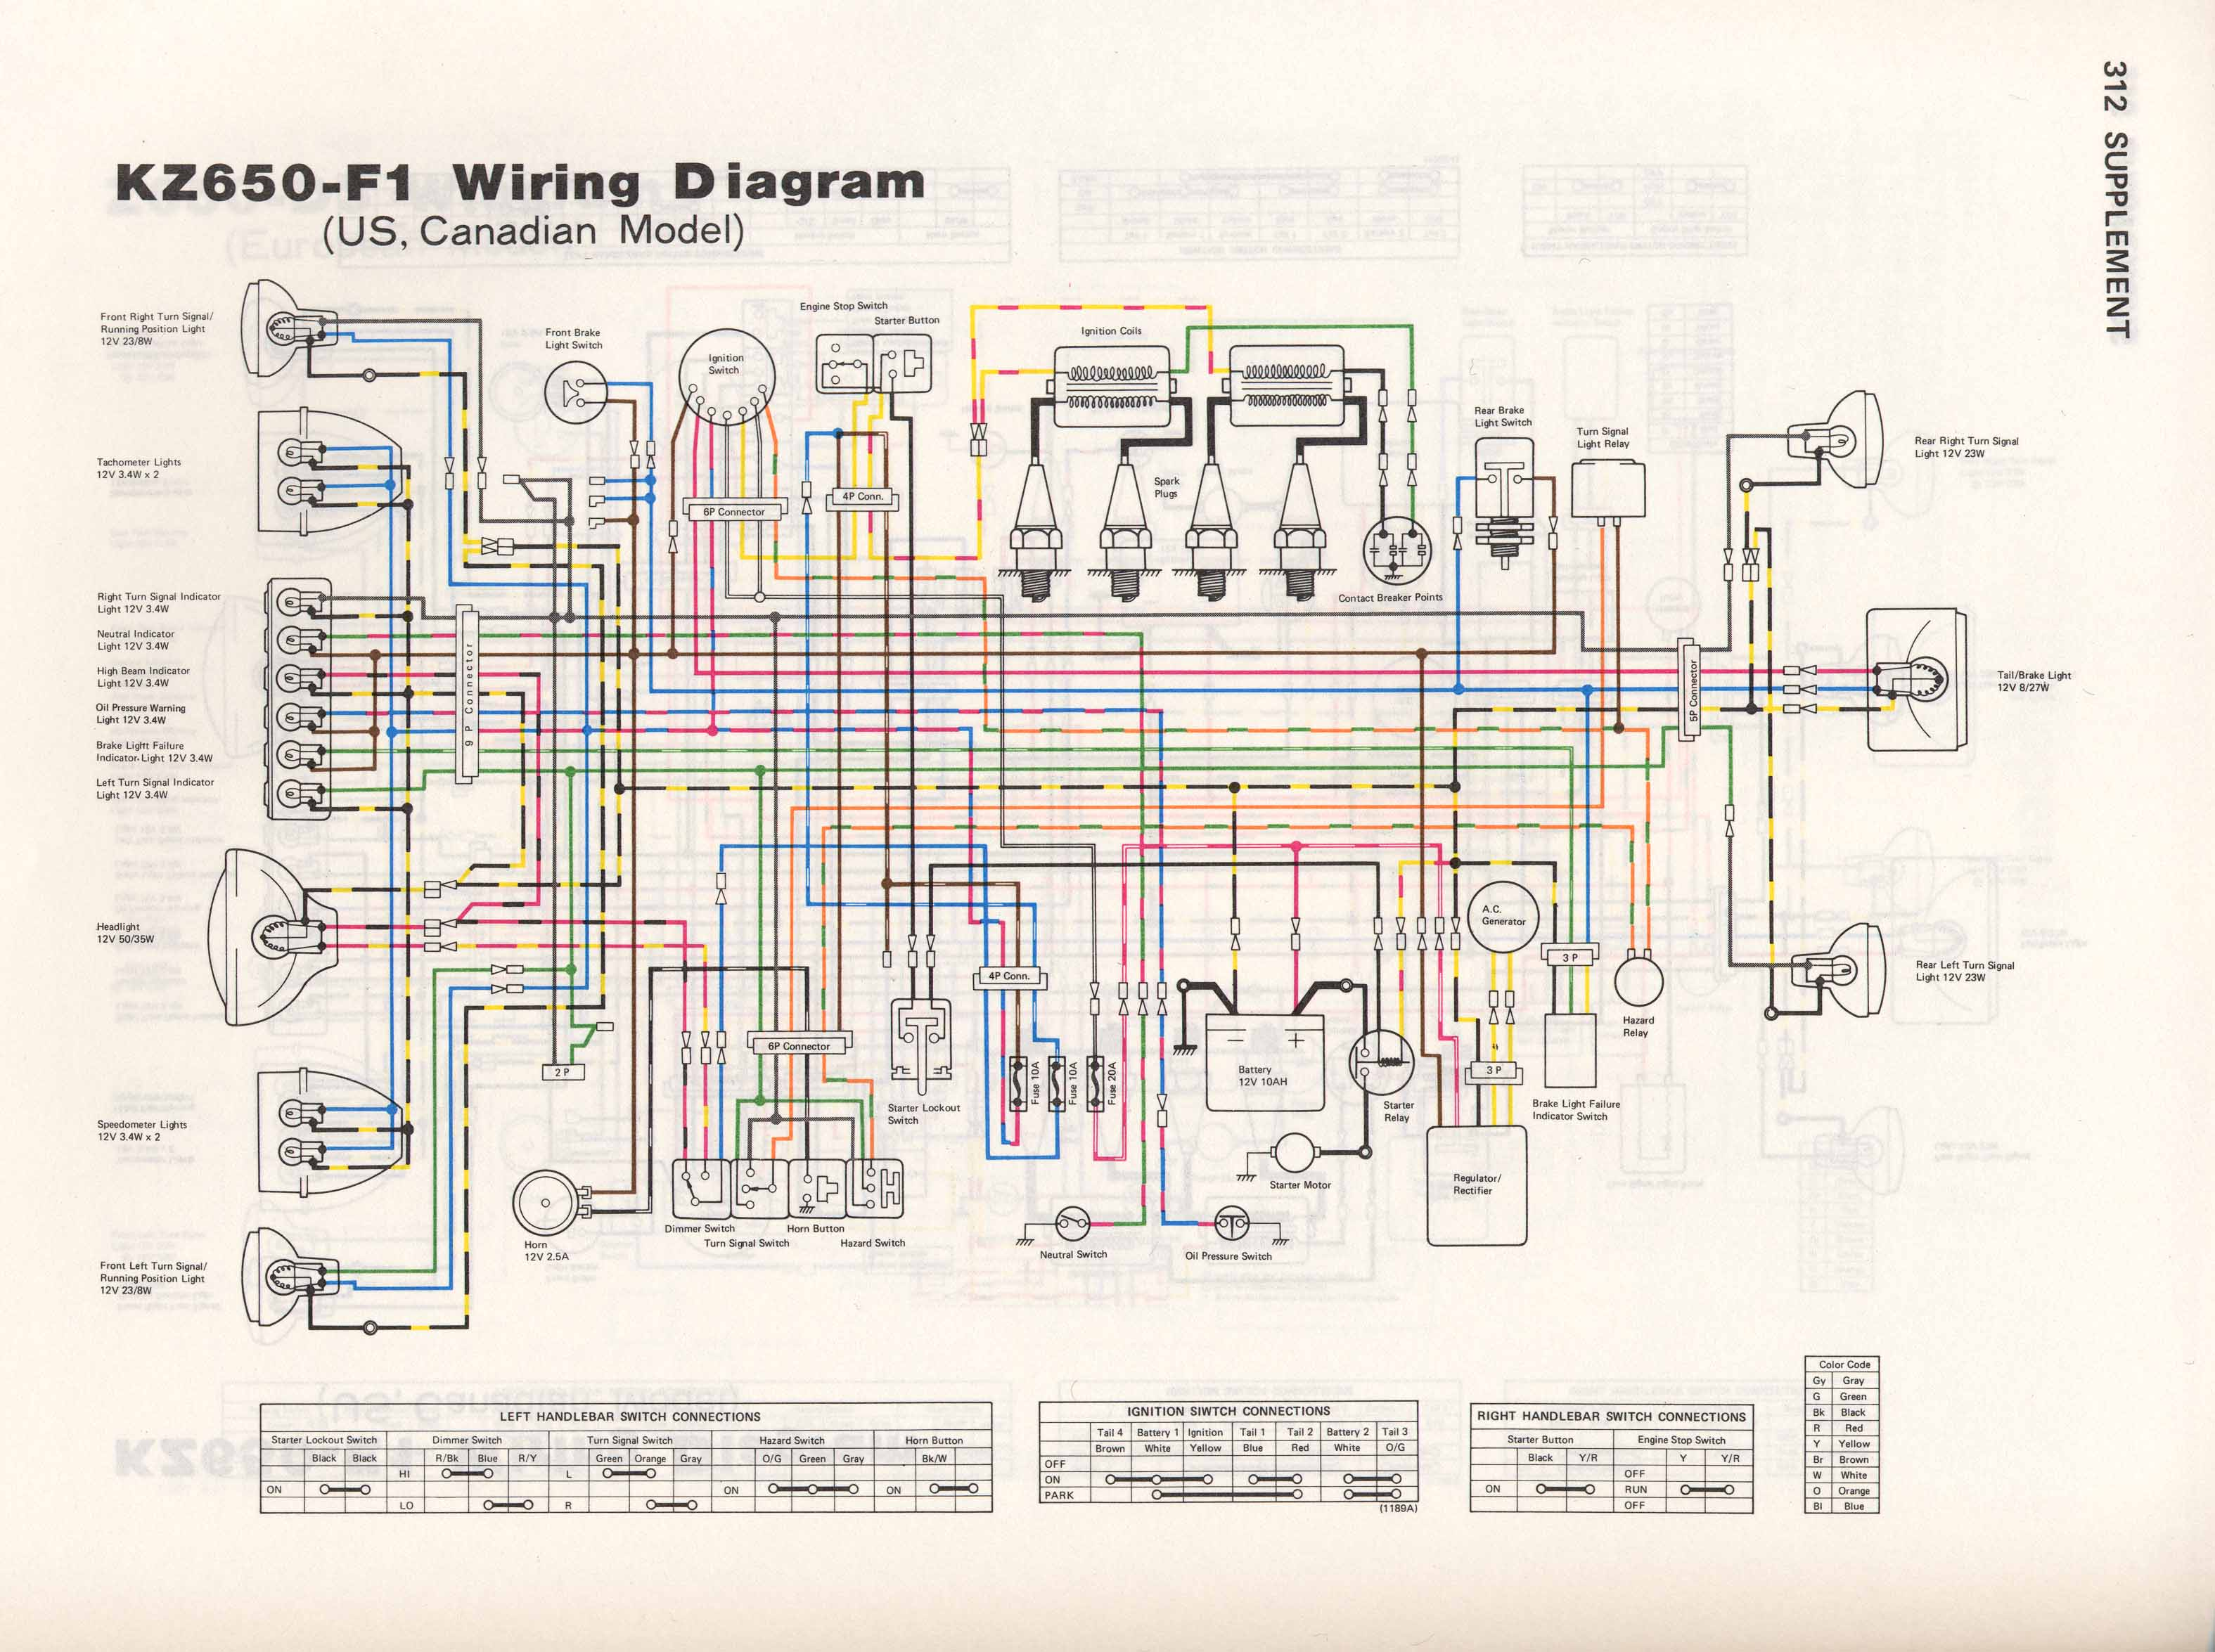 KZ650 F1 kz650 info wiring diagrams 1979 volvo 242 dl wiring diagram at aneh.co